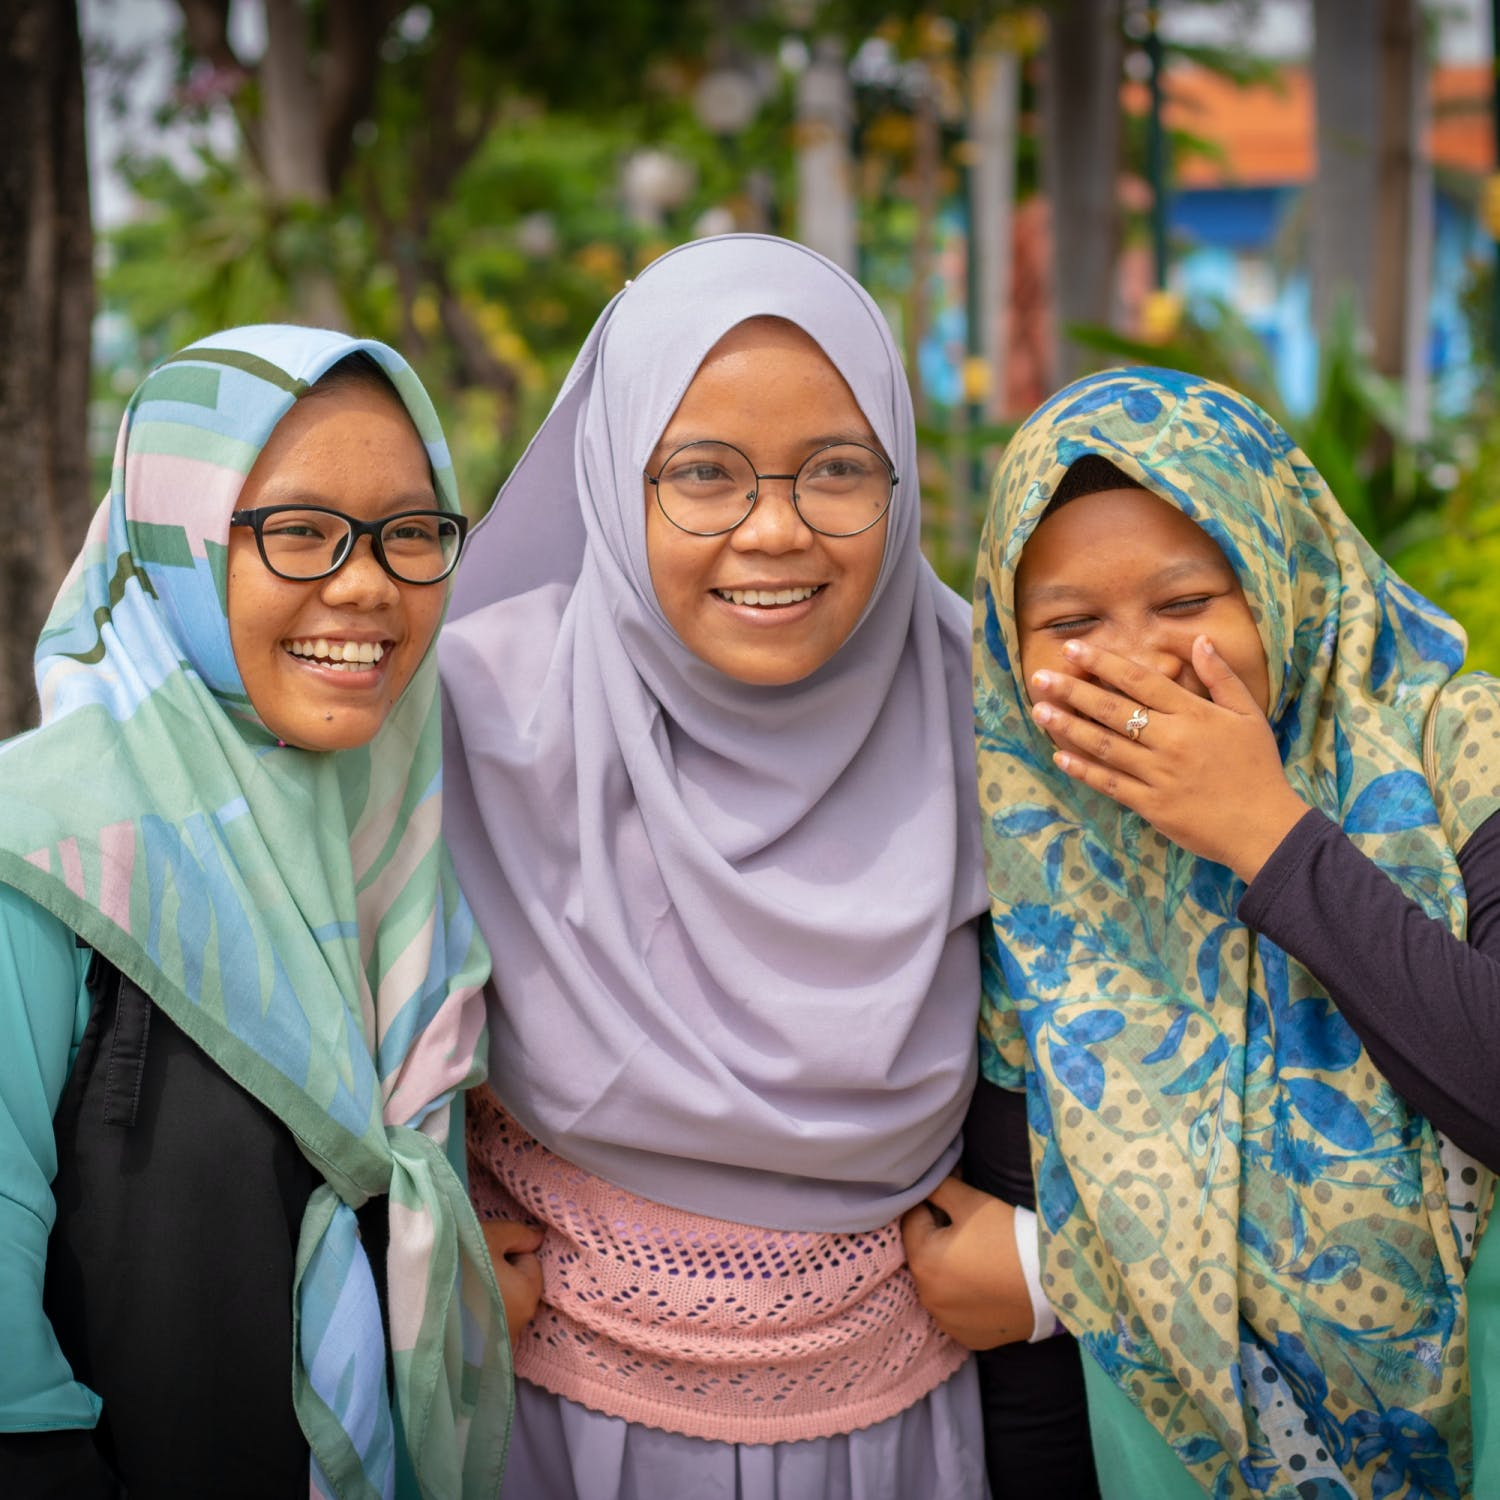 Three Muslim women laughing